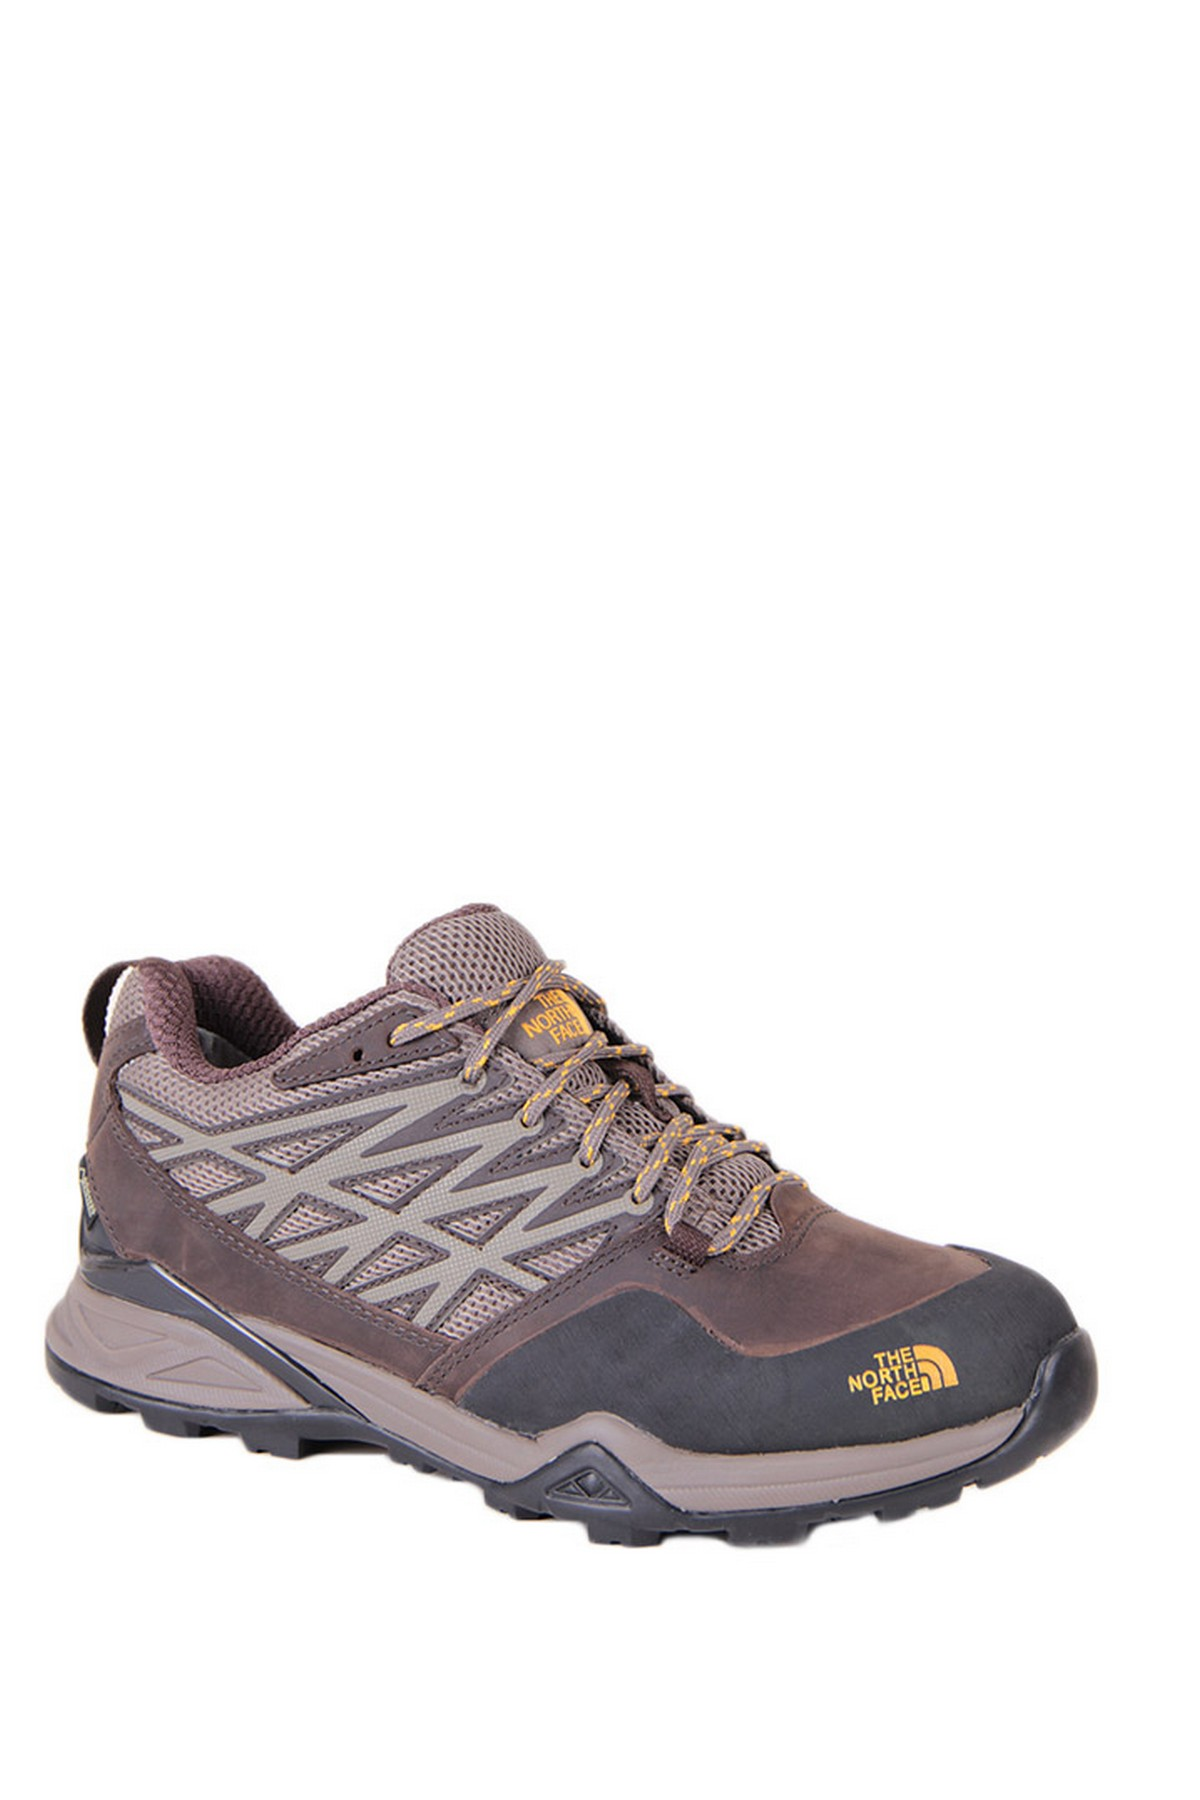 The North Face T0CDF6GRY